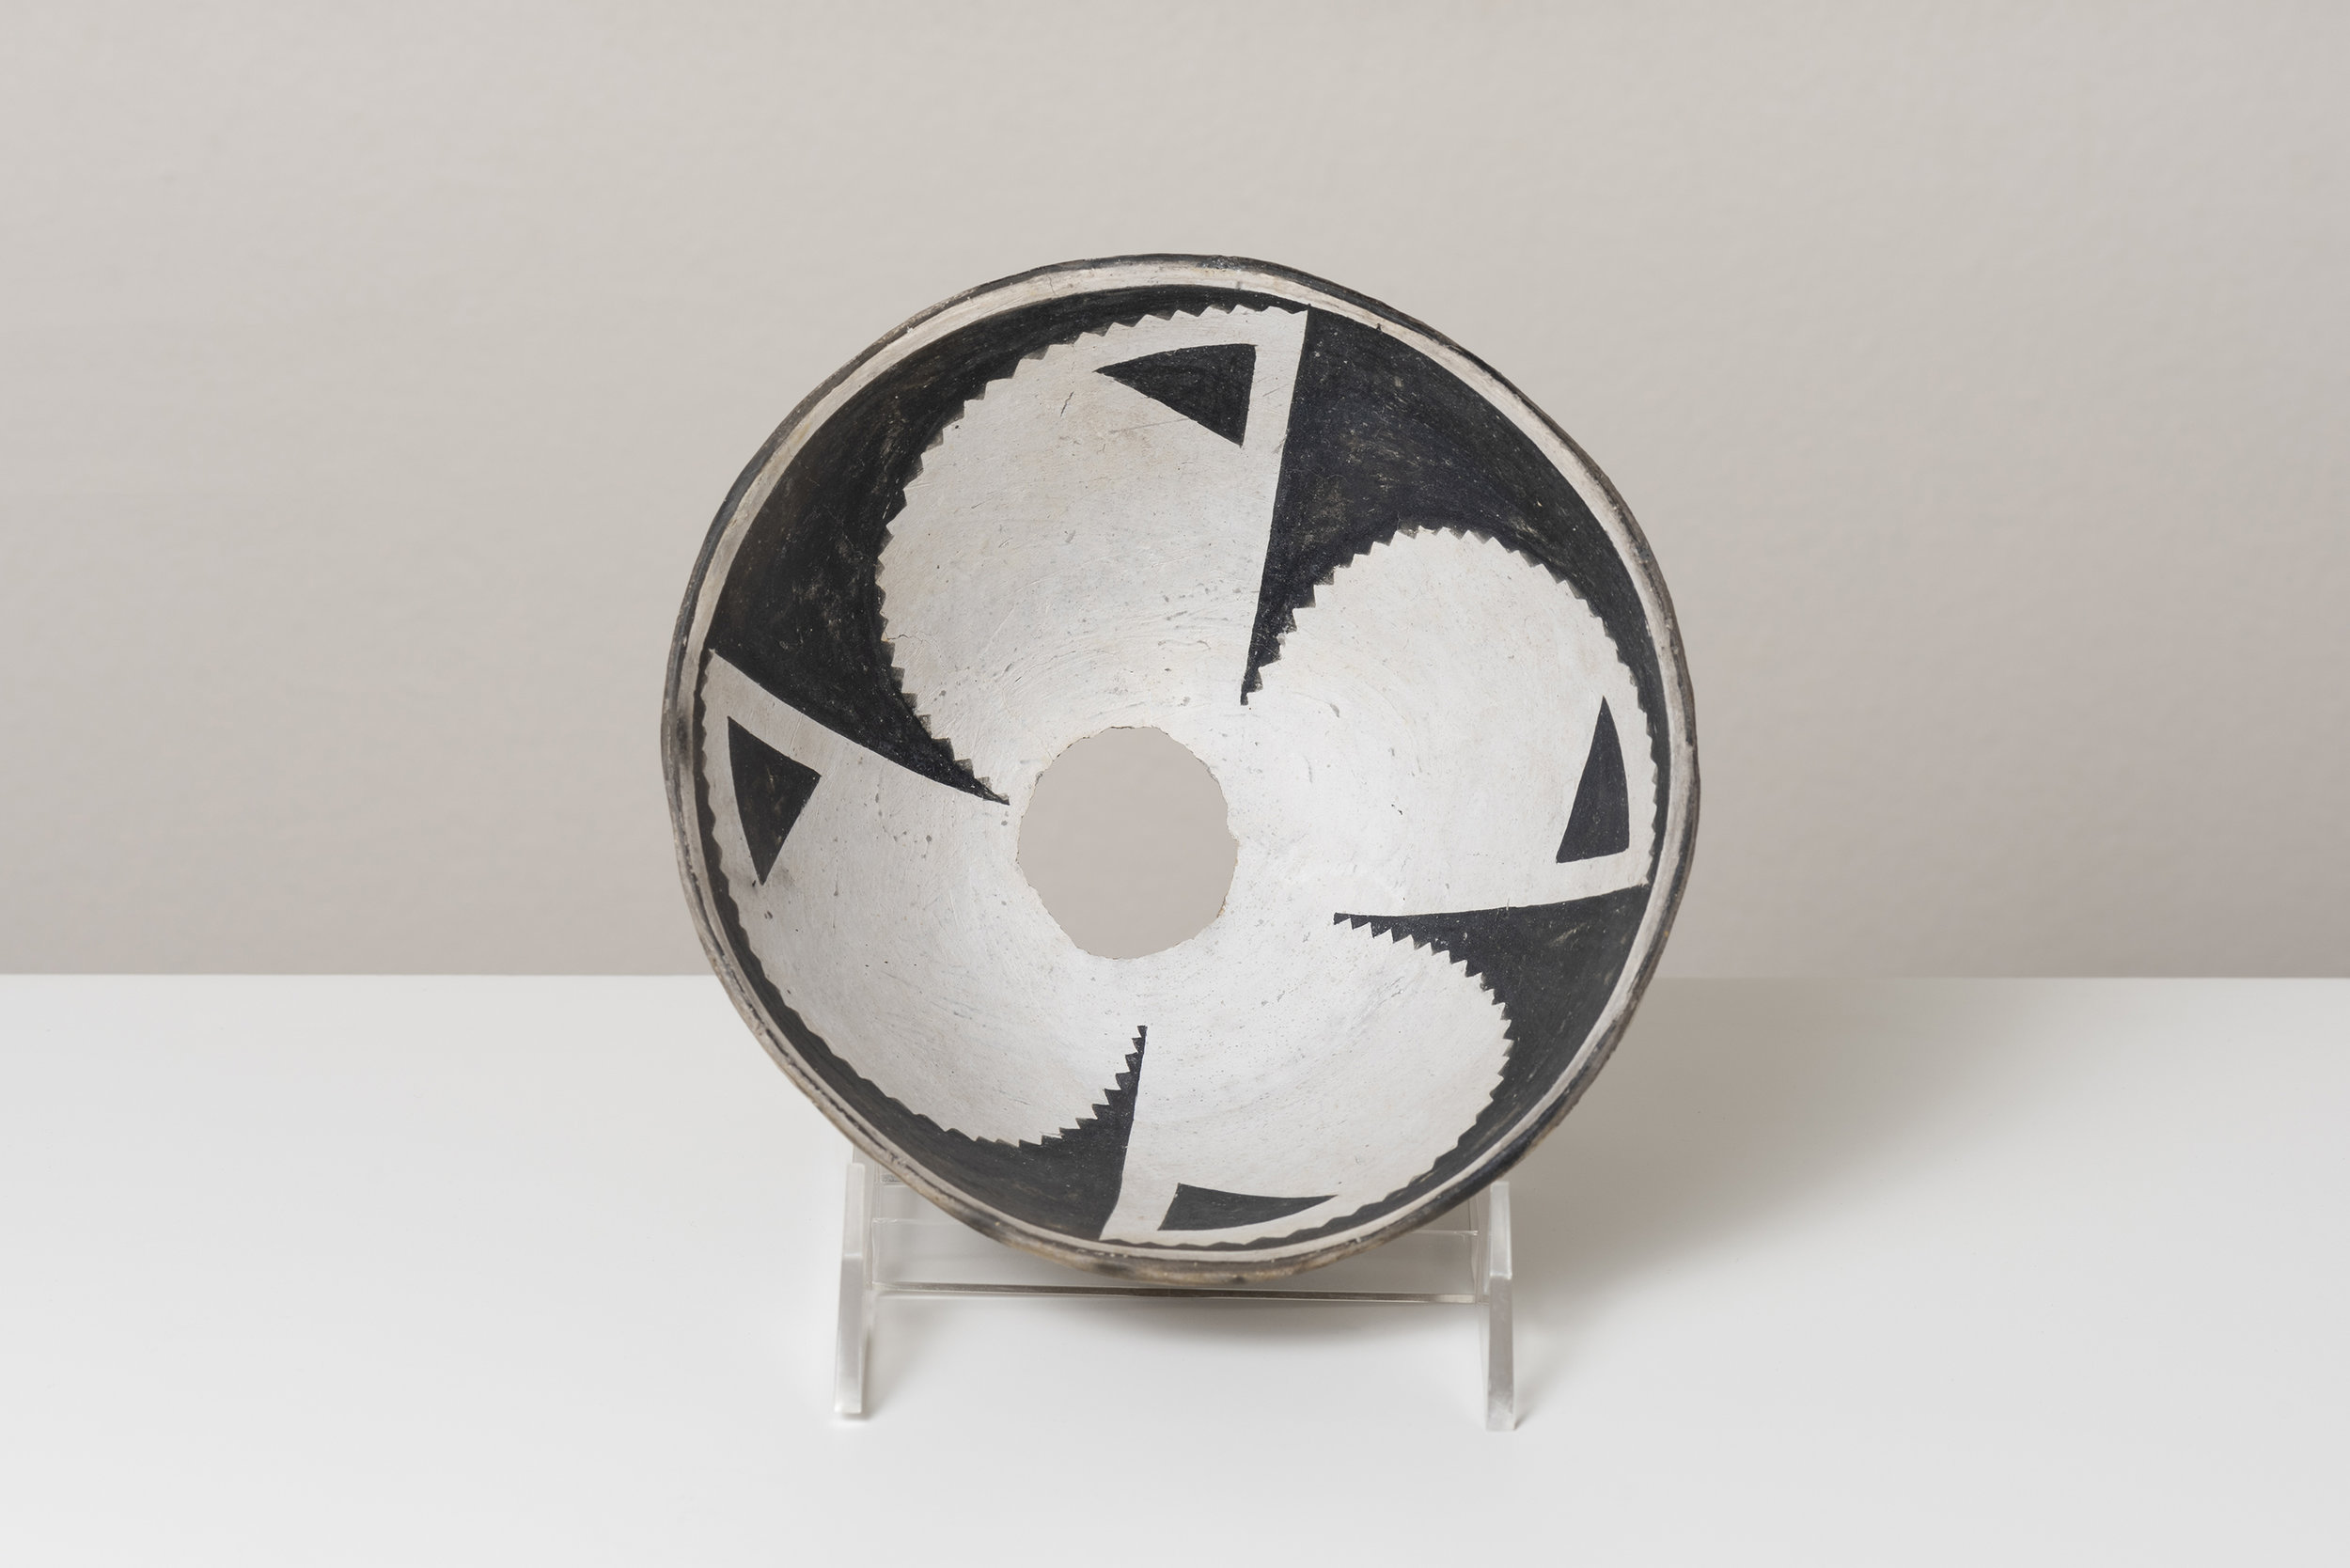 Classic Mimbres Black-on-white  Abstracted datura blossom c. 900 - 1000 CE Painted ceramic 6 inches diameter, 4 inches depth